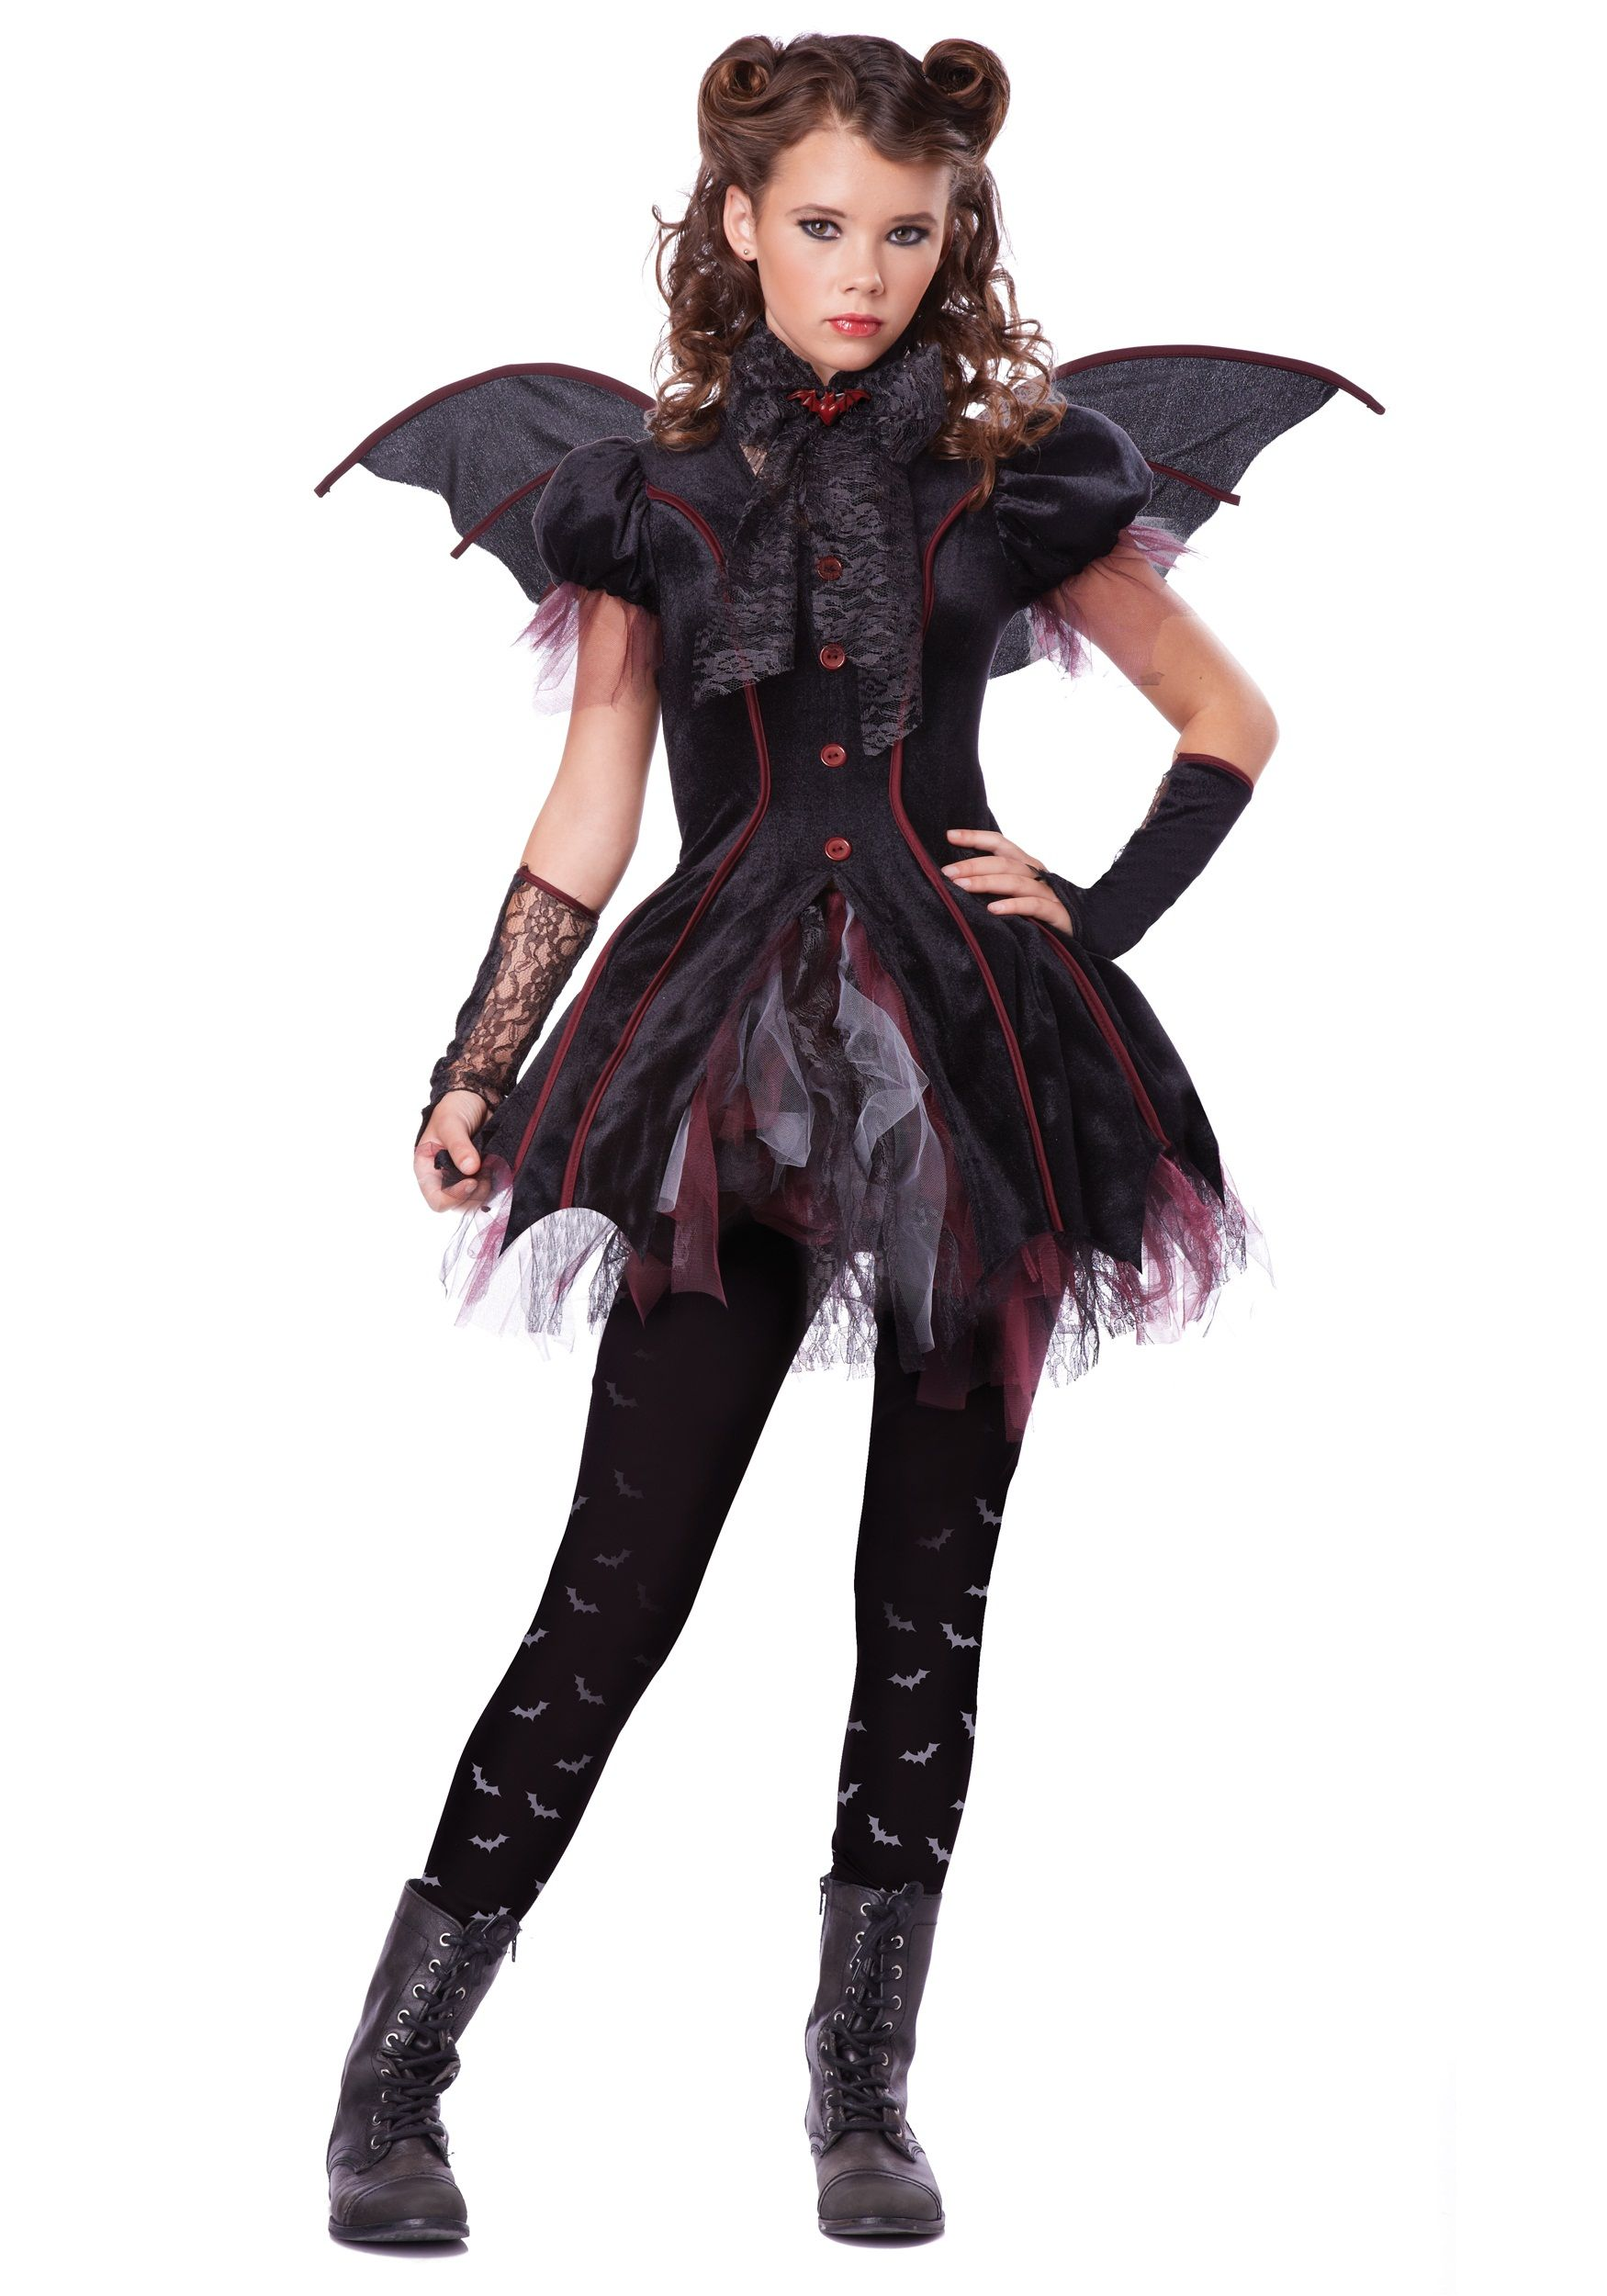 25+ Best Ideas about Vampire Costumes For Kids on ...